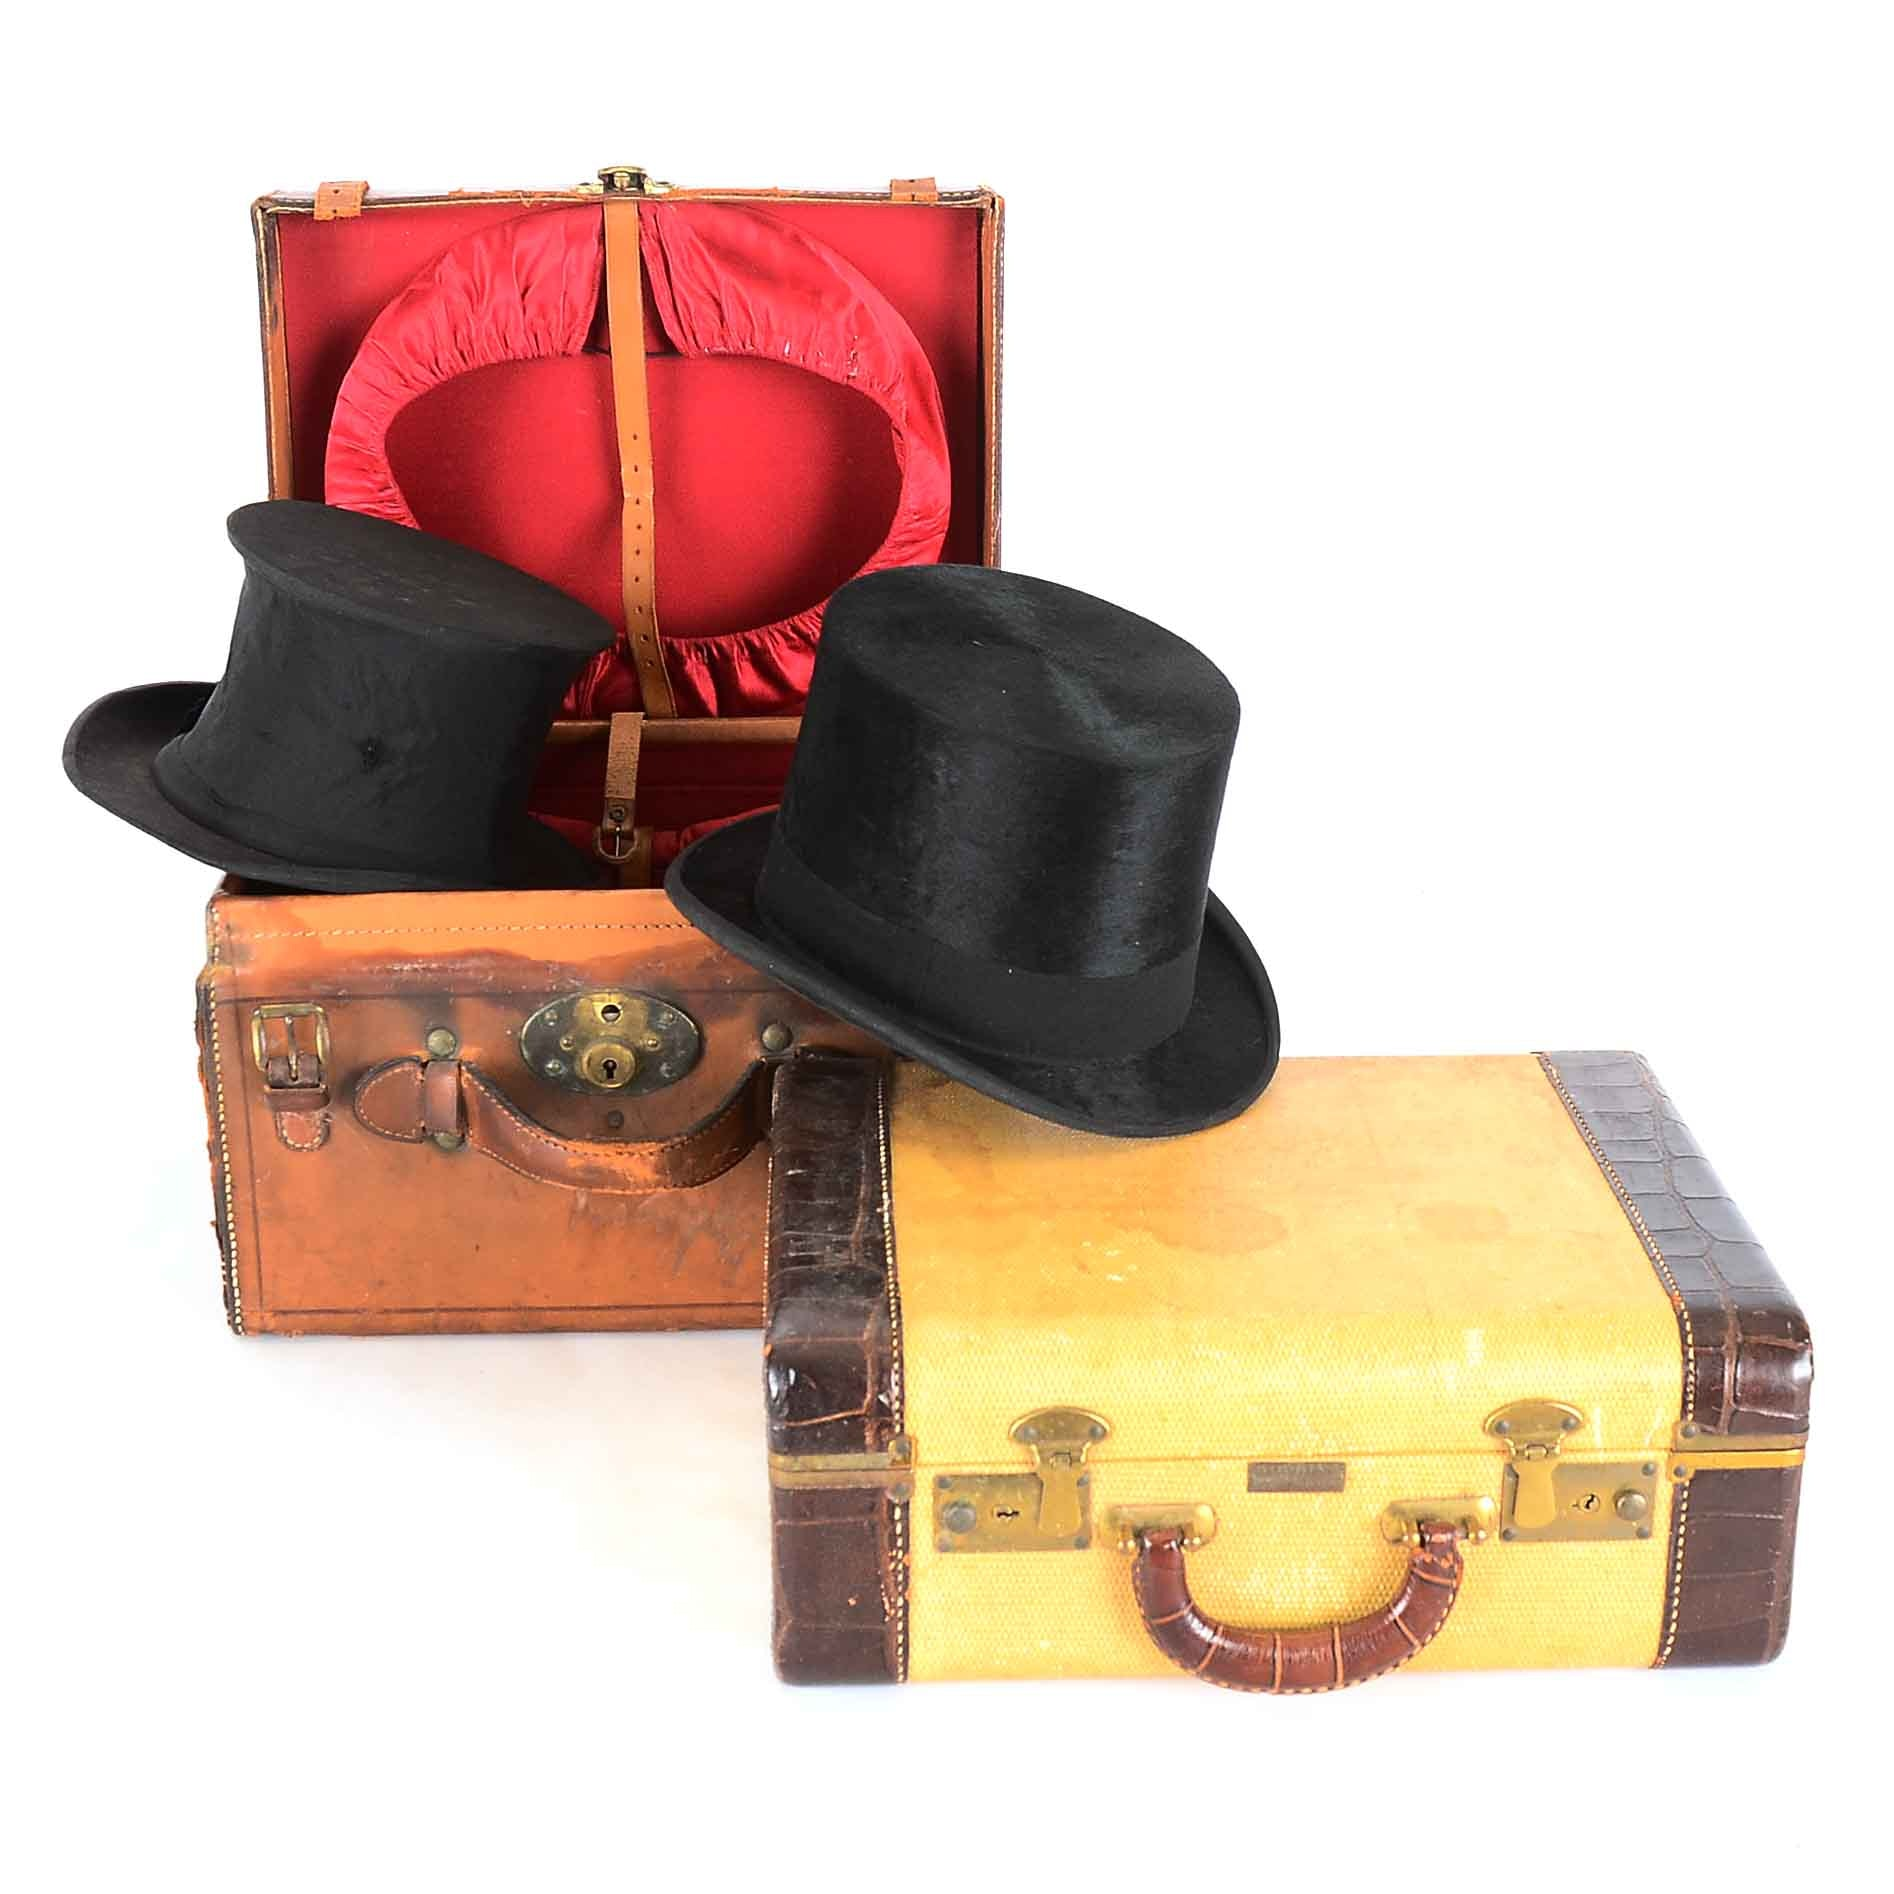 Two Vintage Cases and Top Hat